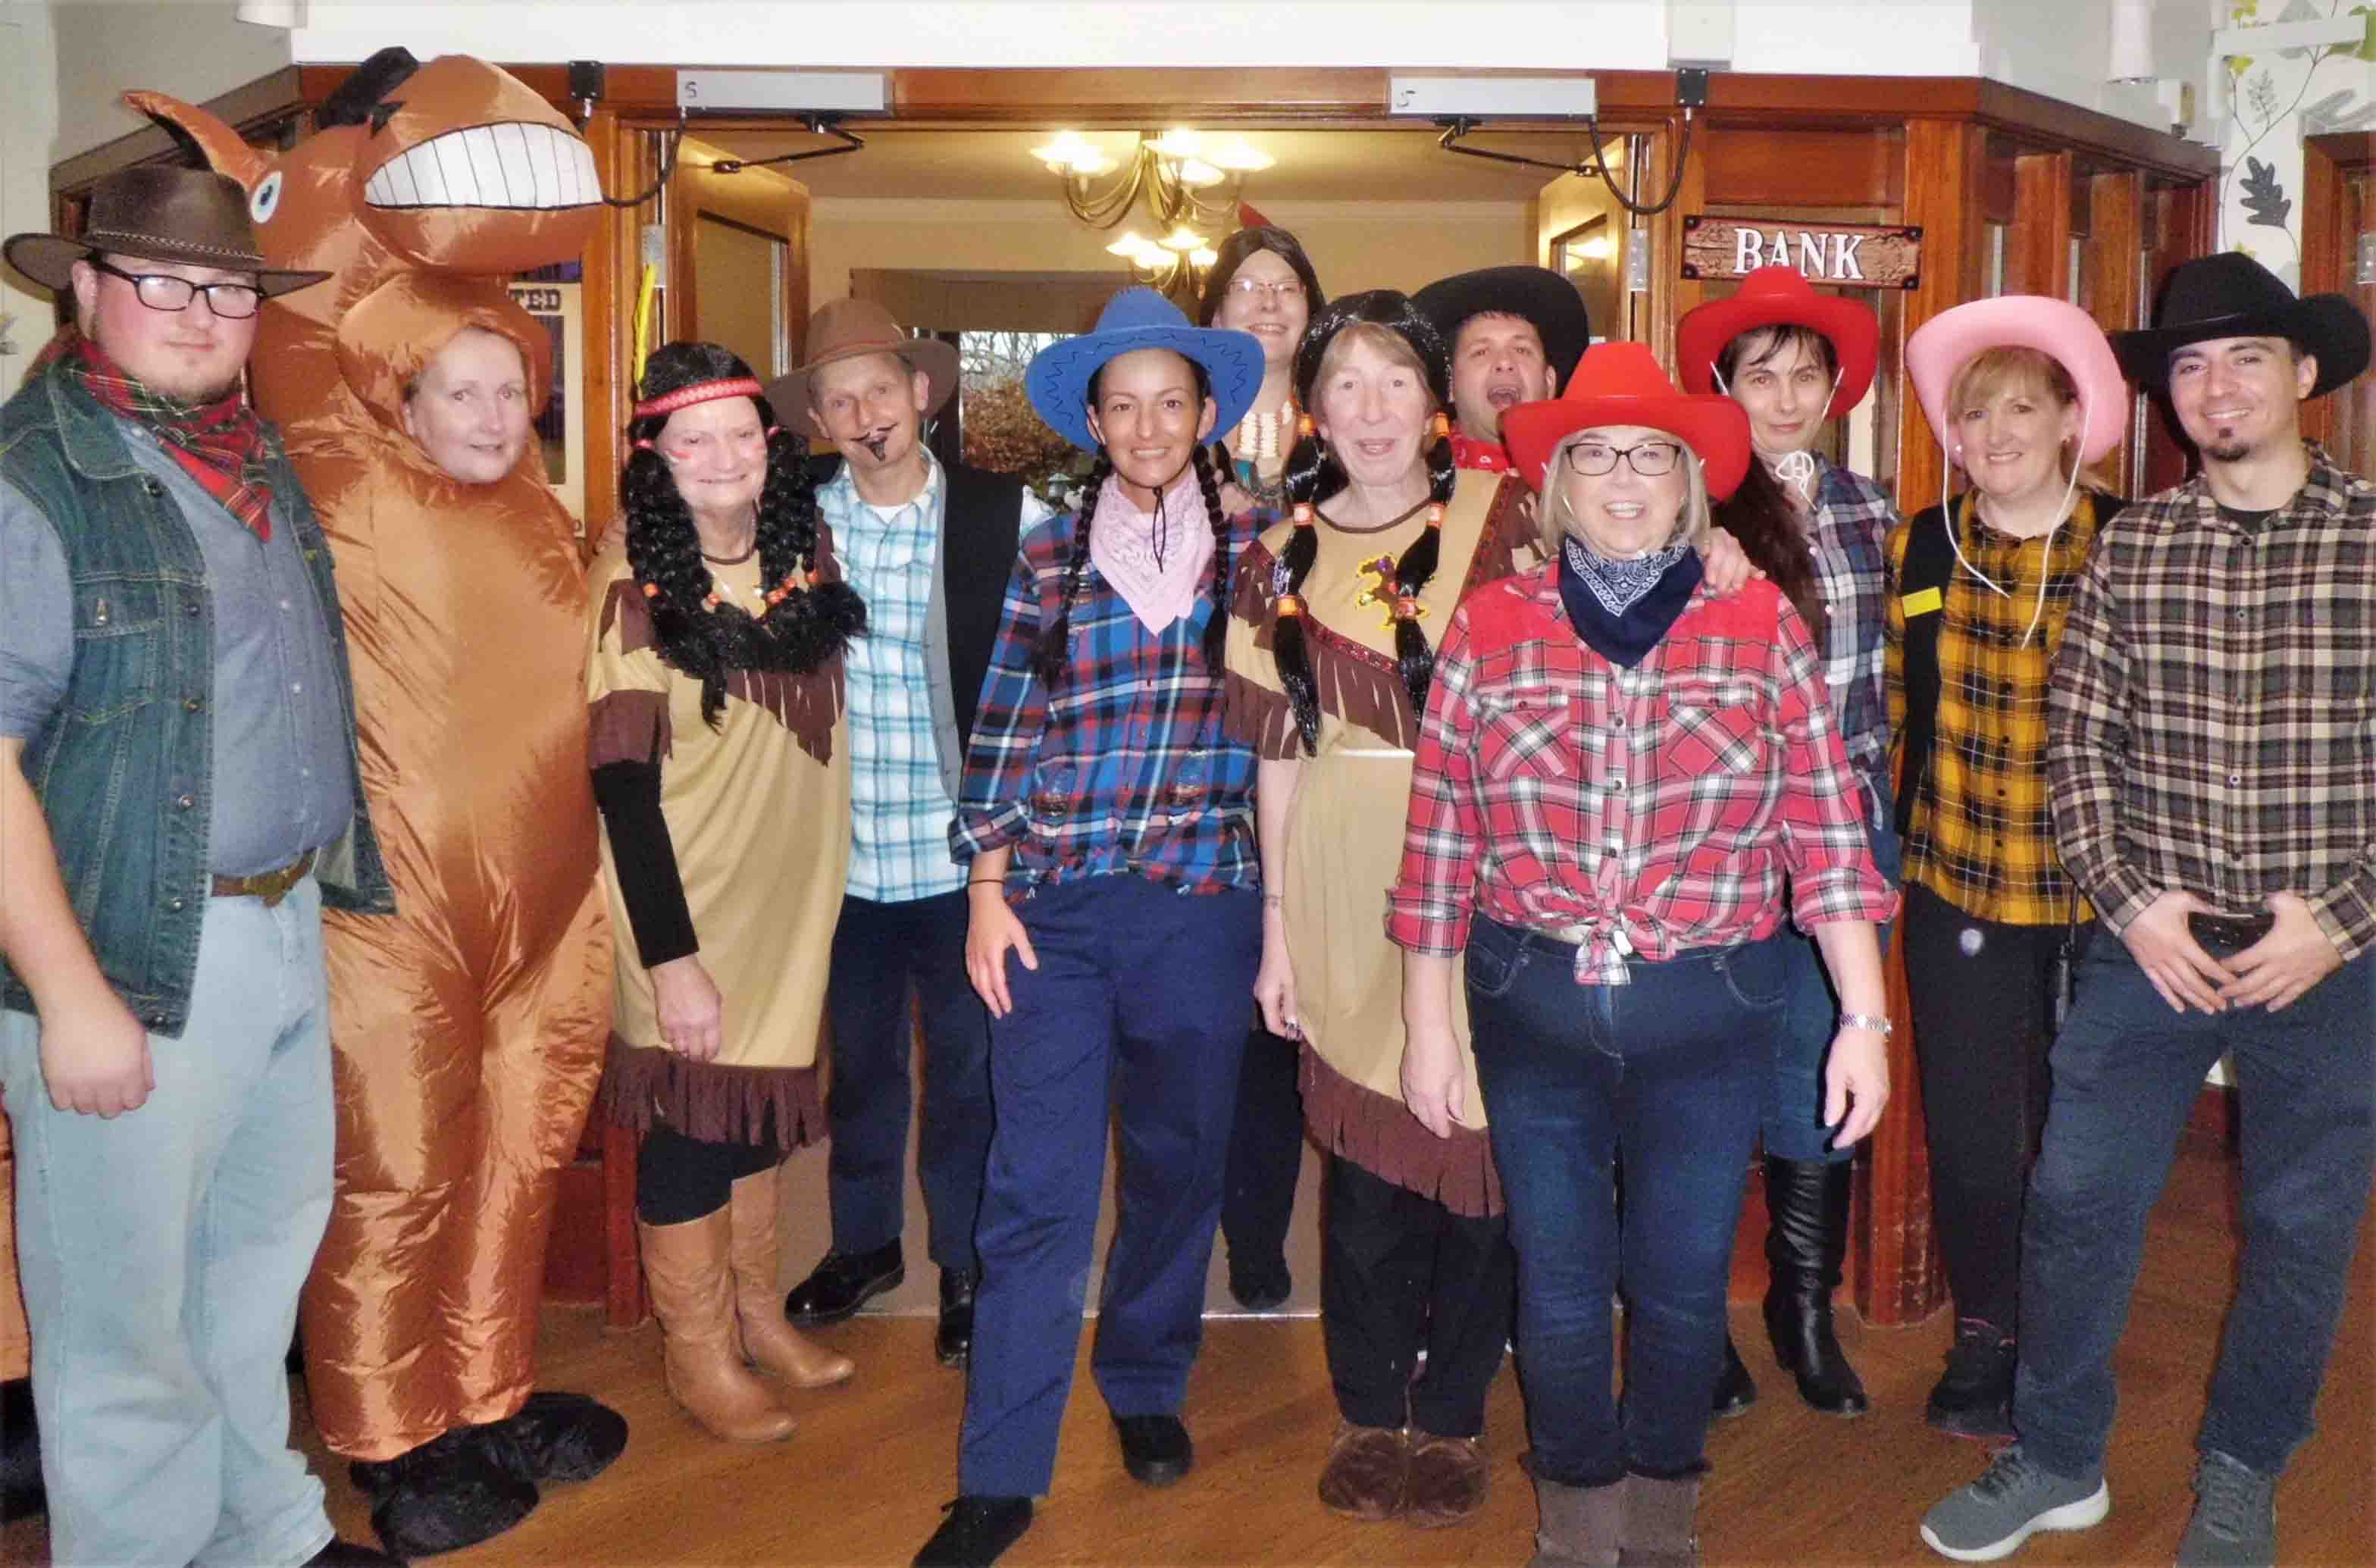 A day in the Wild, Wild West for Garioch Care Home!